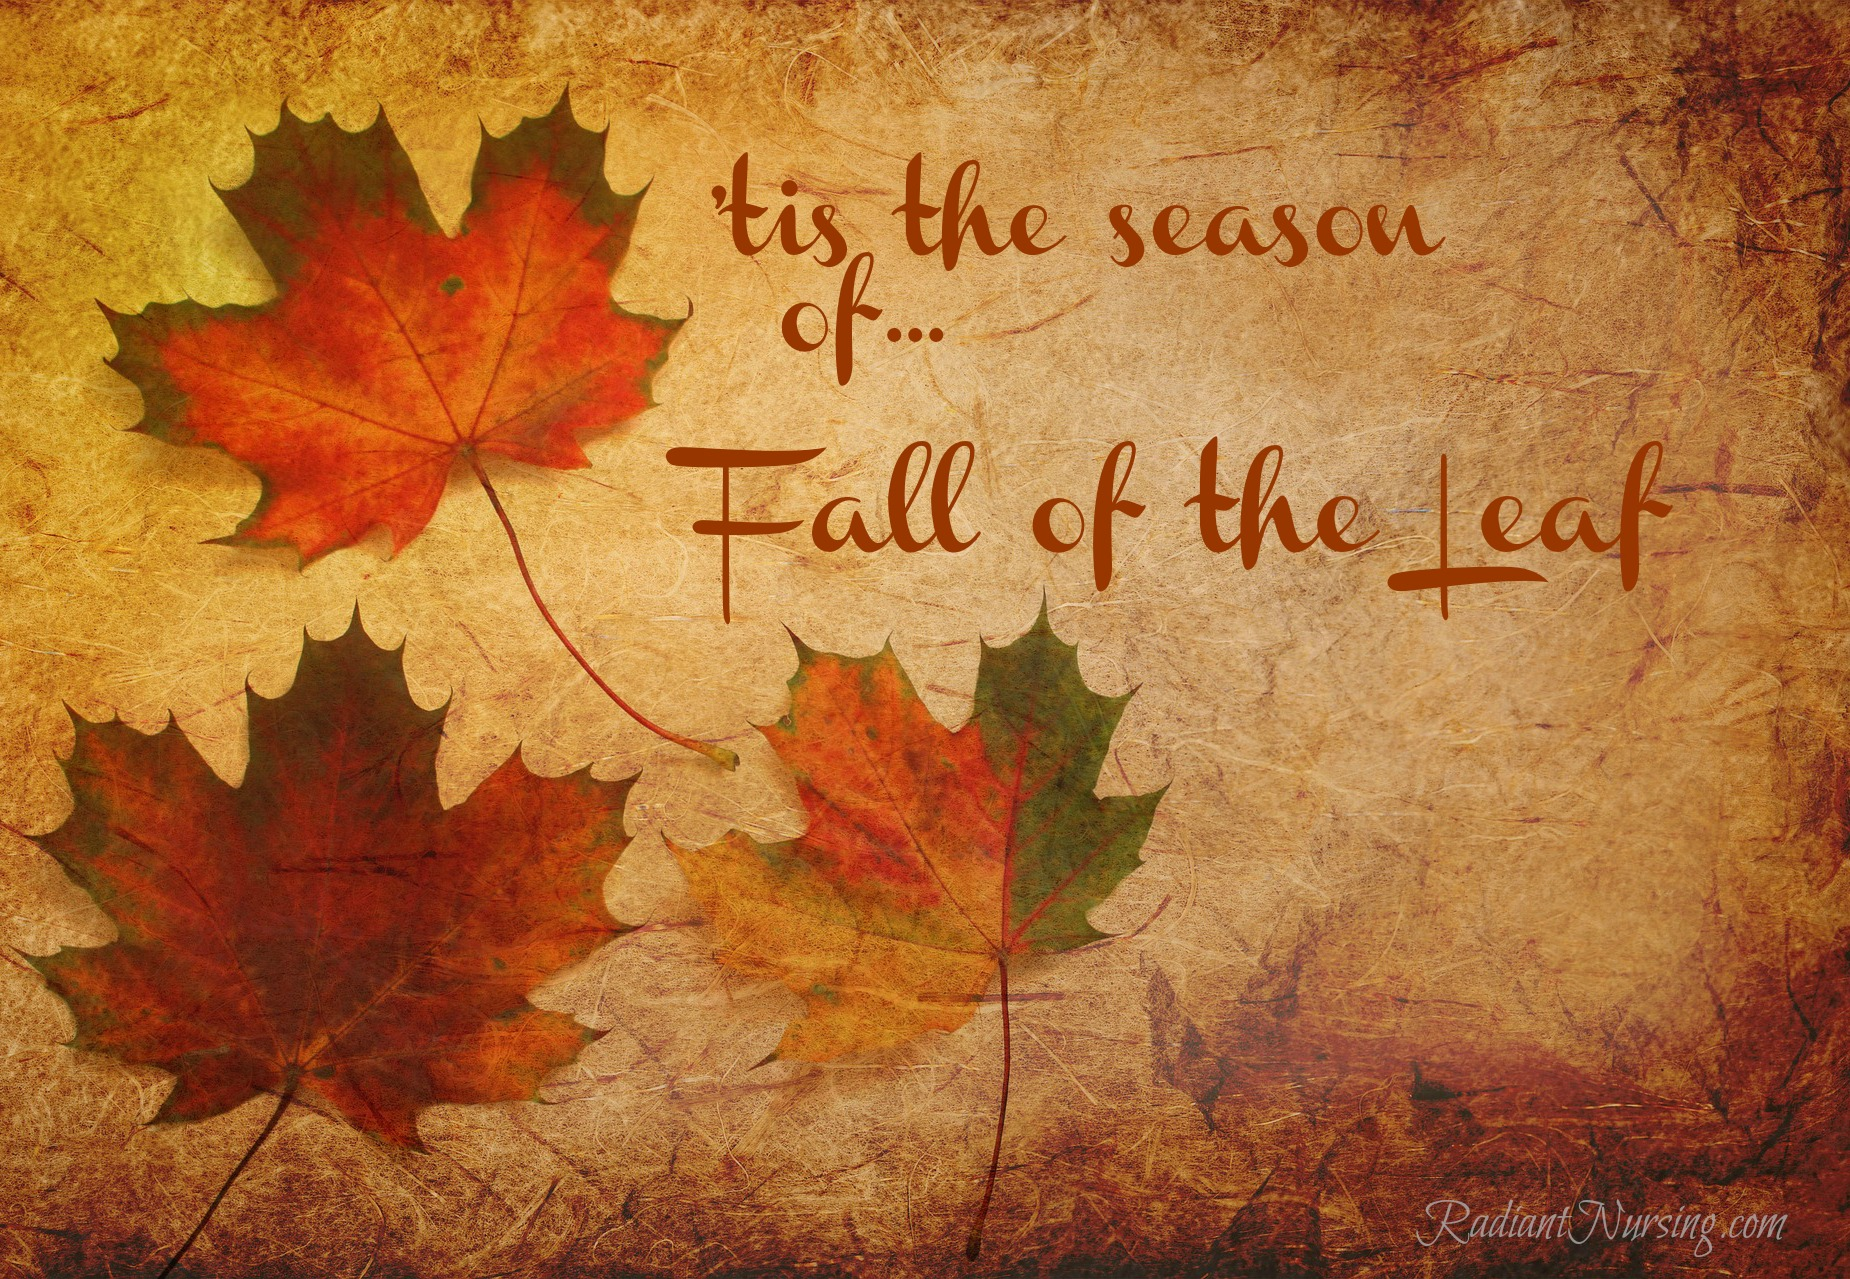 In the 1540s in England, we used to call the season of fall, Fall of the Leaf.